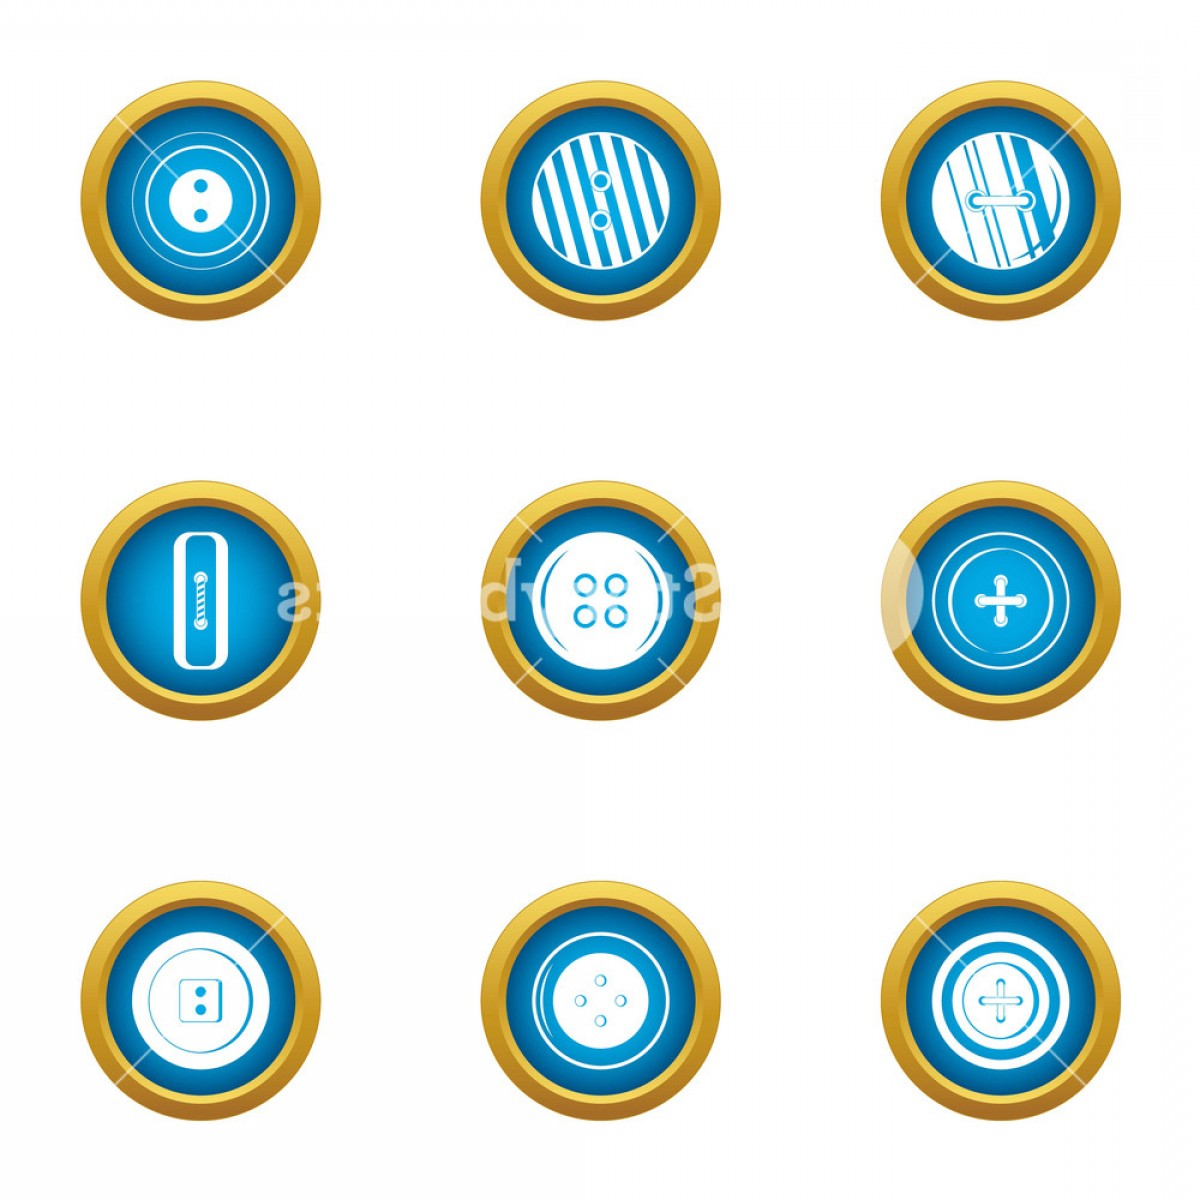 Contact Button Icons Vector Free: Push Button Icons Set Flat Set Of Push Button Vector Icons For Web Isolated On White Background Rfckaxbjjpqbi